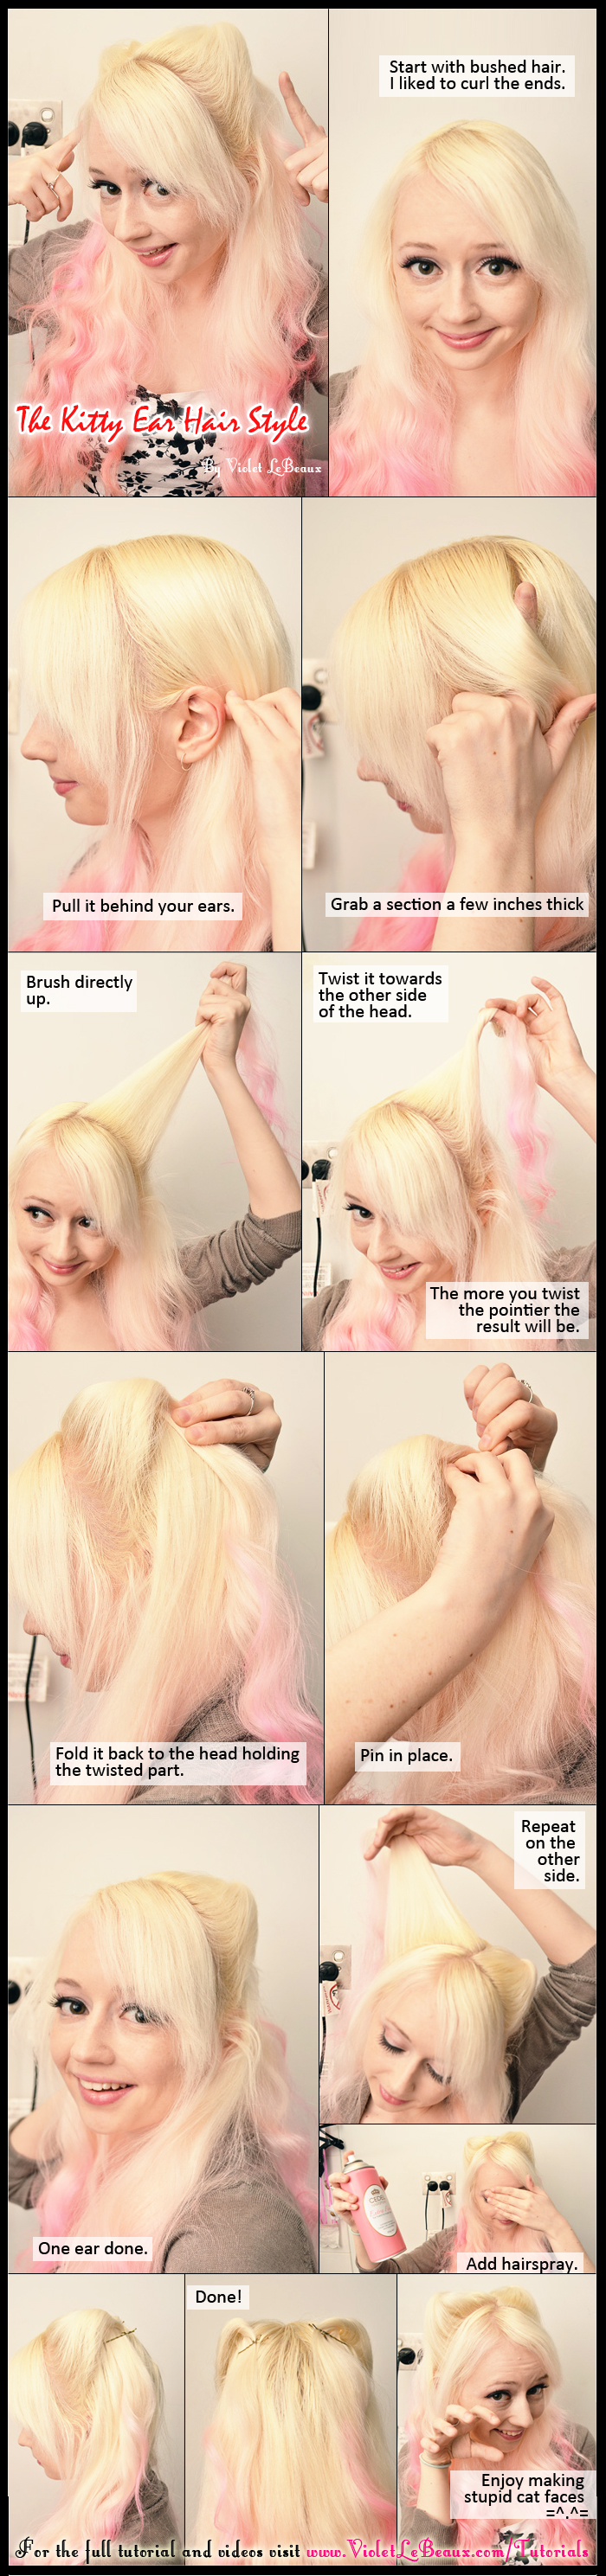 Kitty Ears Neko Mimi Hairstyle Tutorial by VioletLeBeaux